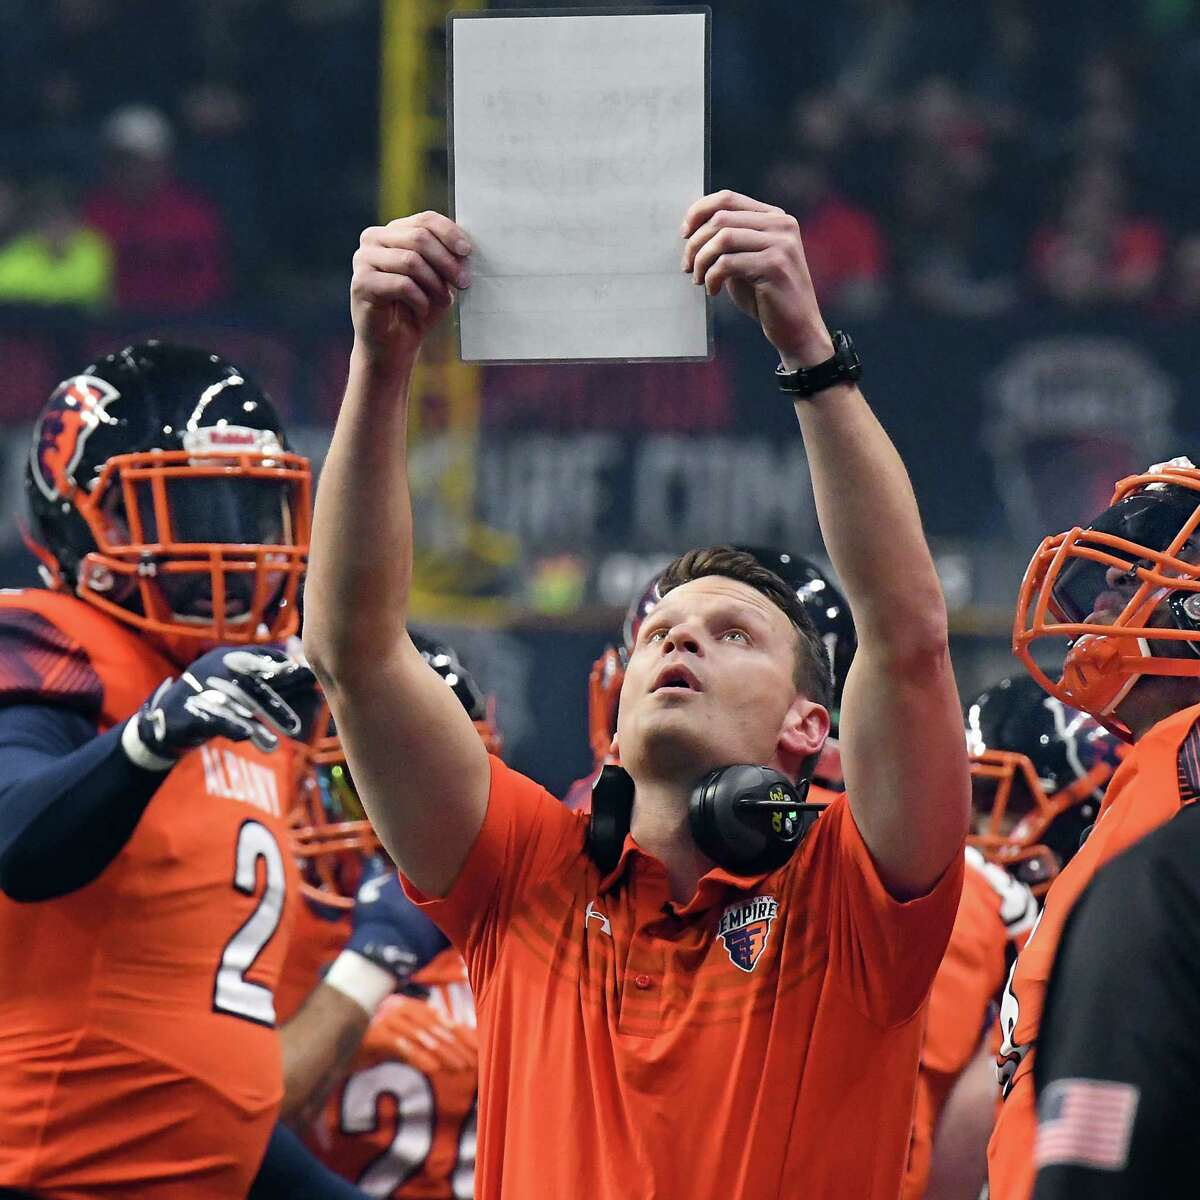 Albany Empire head coach Rob Keefe with players on the sidelines as they make their Arena Football League debut against the Philadelphia Soul to a packed house at the Times Union Center Saturday April 14, 2018 in Albany, NY. (John Carl D'Annibale/Times Union)